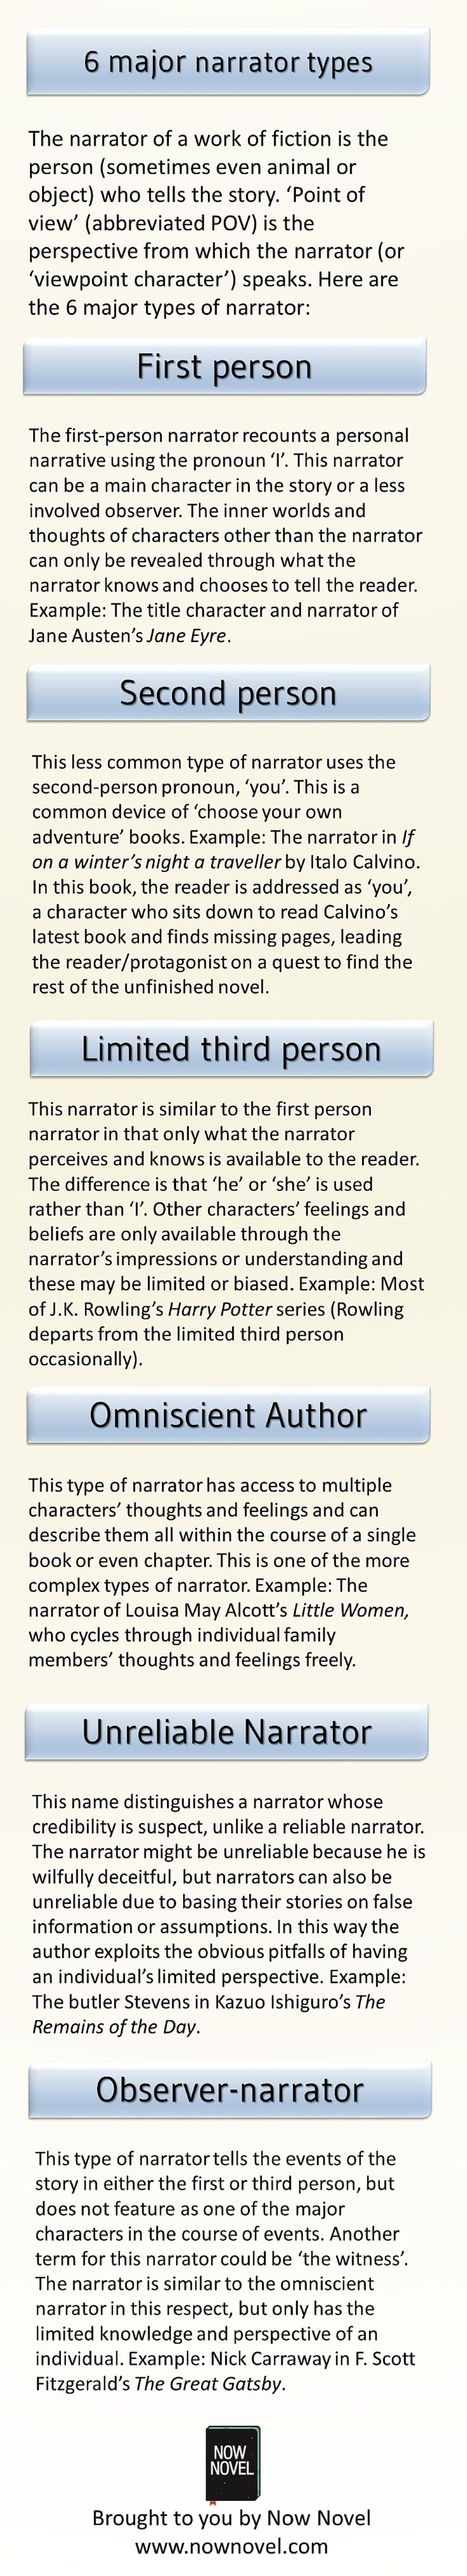 6 Types Of Narration Graphic